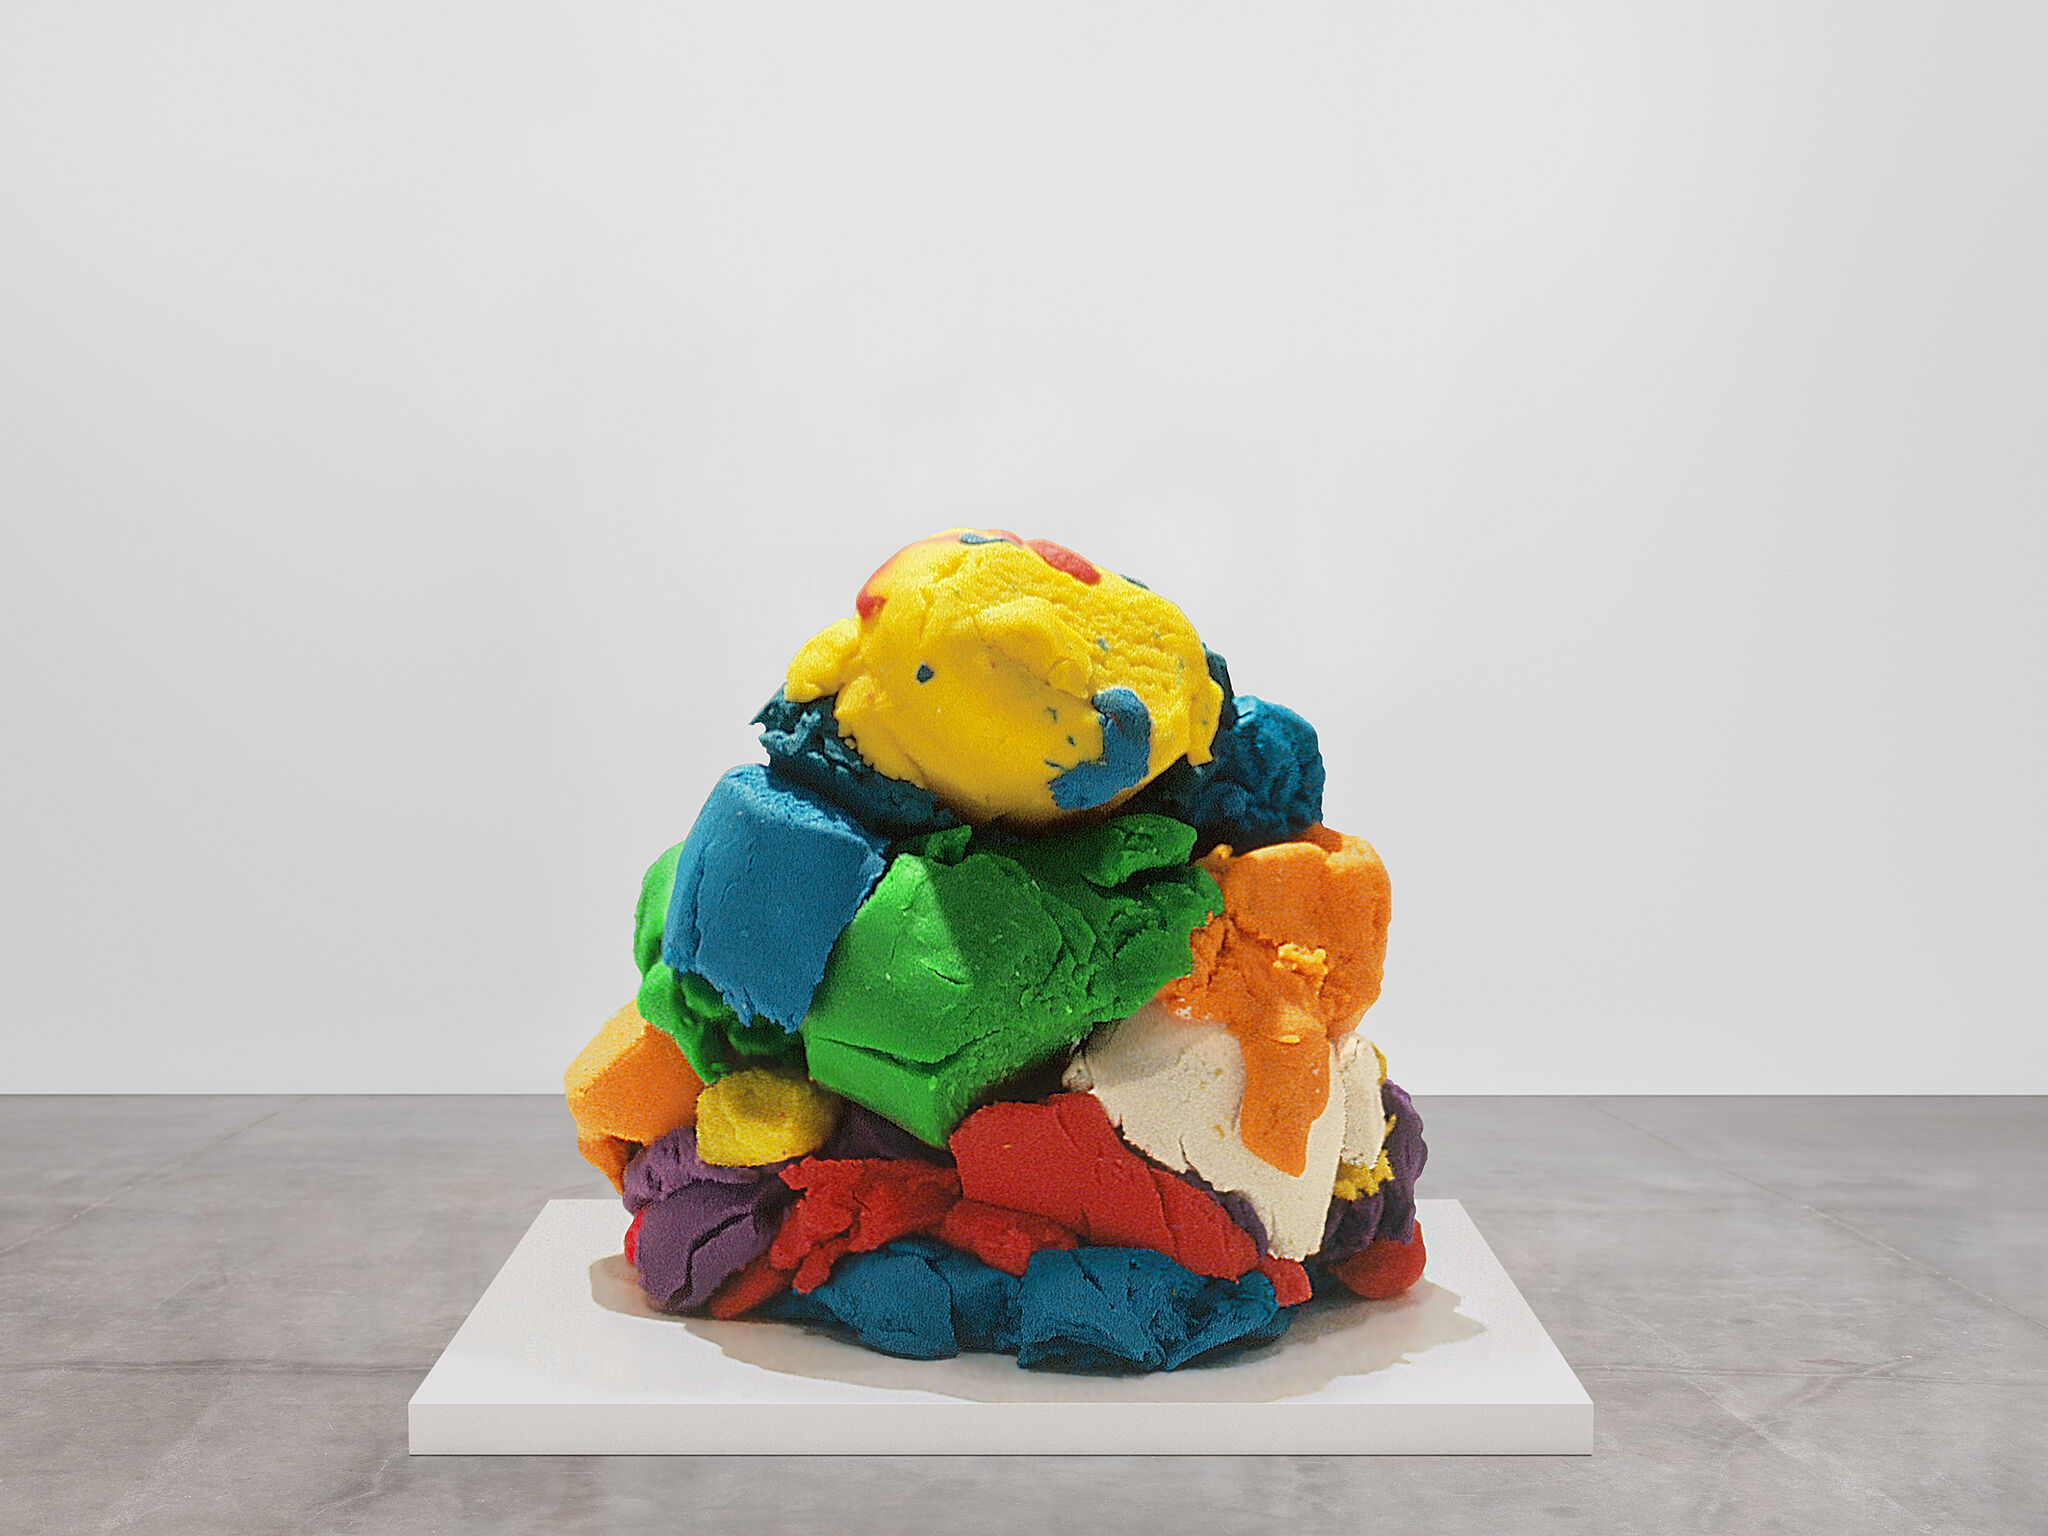 A sculpture shaped like mounds of play-doh.